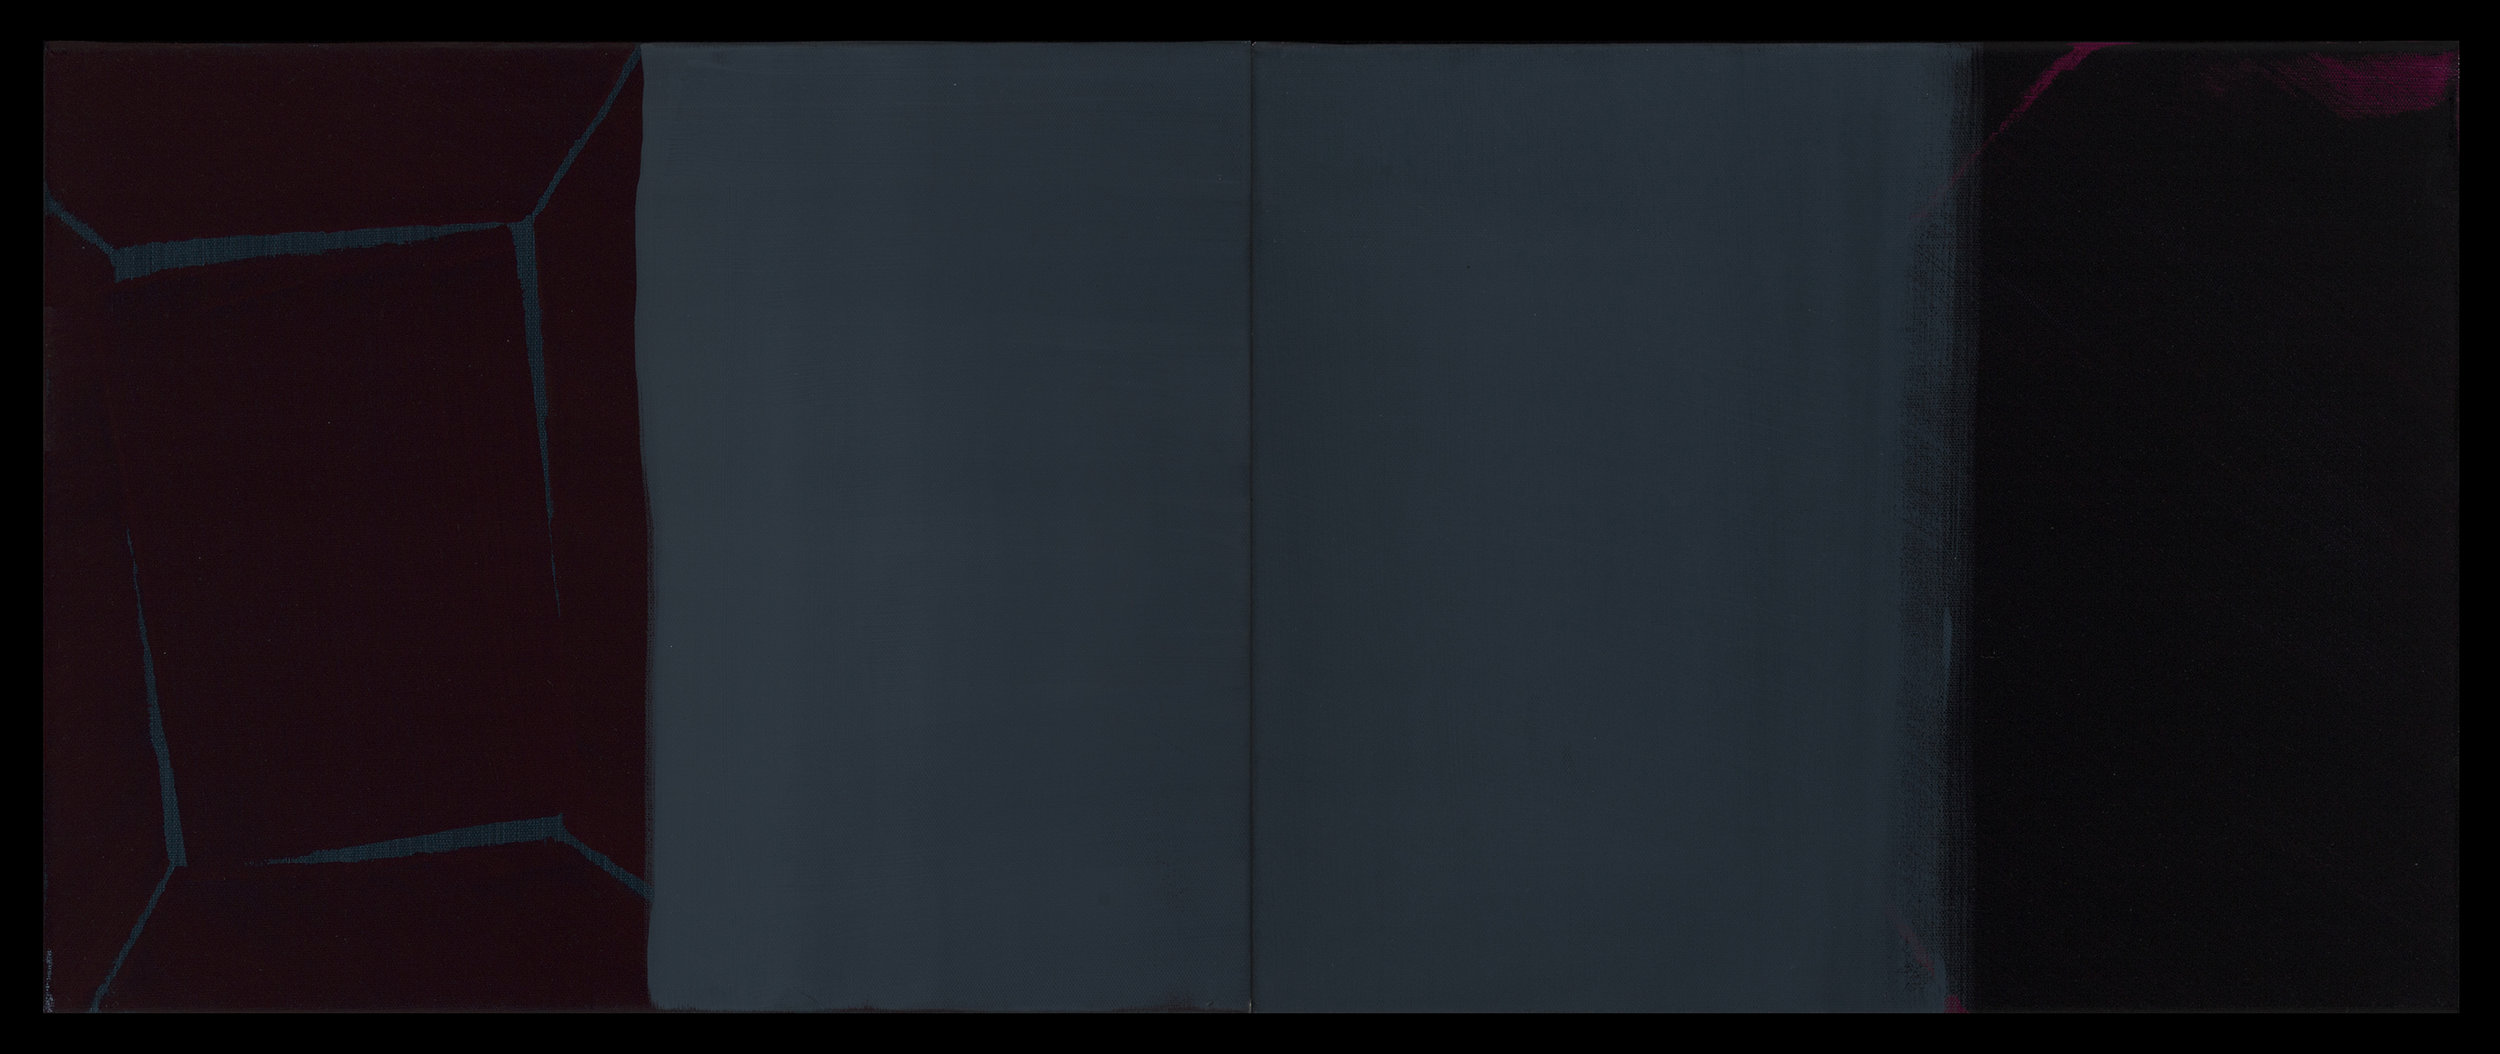 2018, 40x100 cm,  oil on canvs